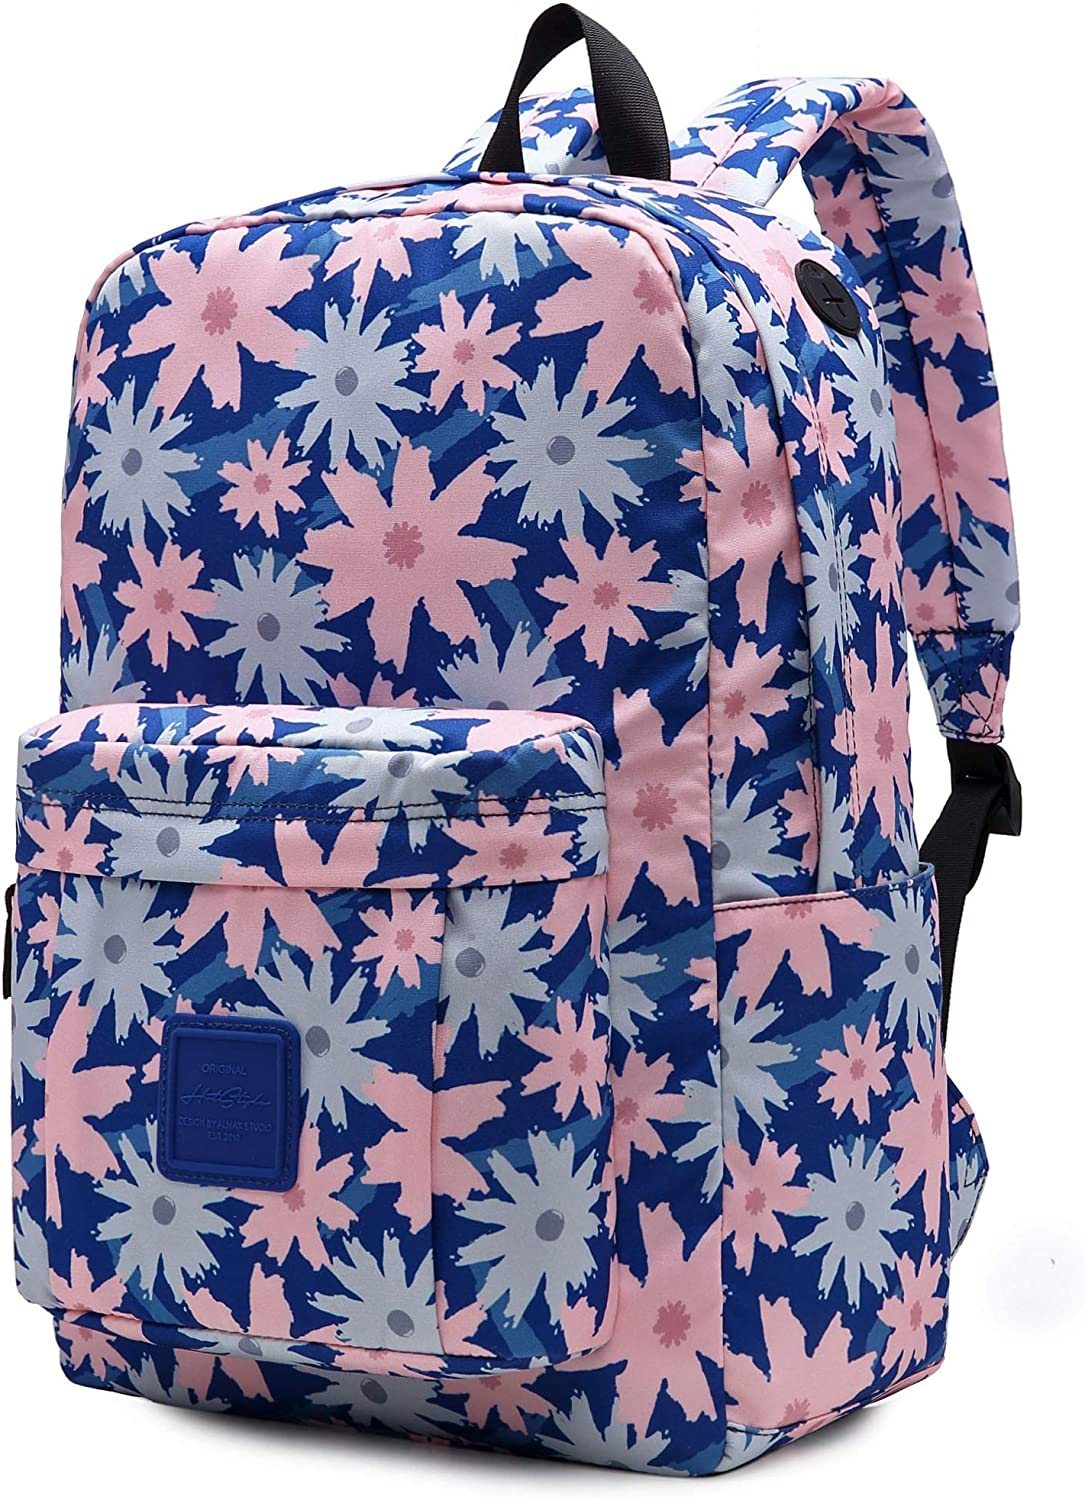 599s Floral School Backpack For Teen Girls, Water resistance & Durable Bookbag Cute for College, Coreopsis, Navy